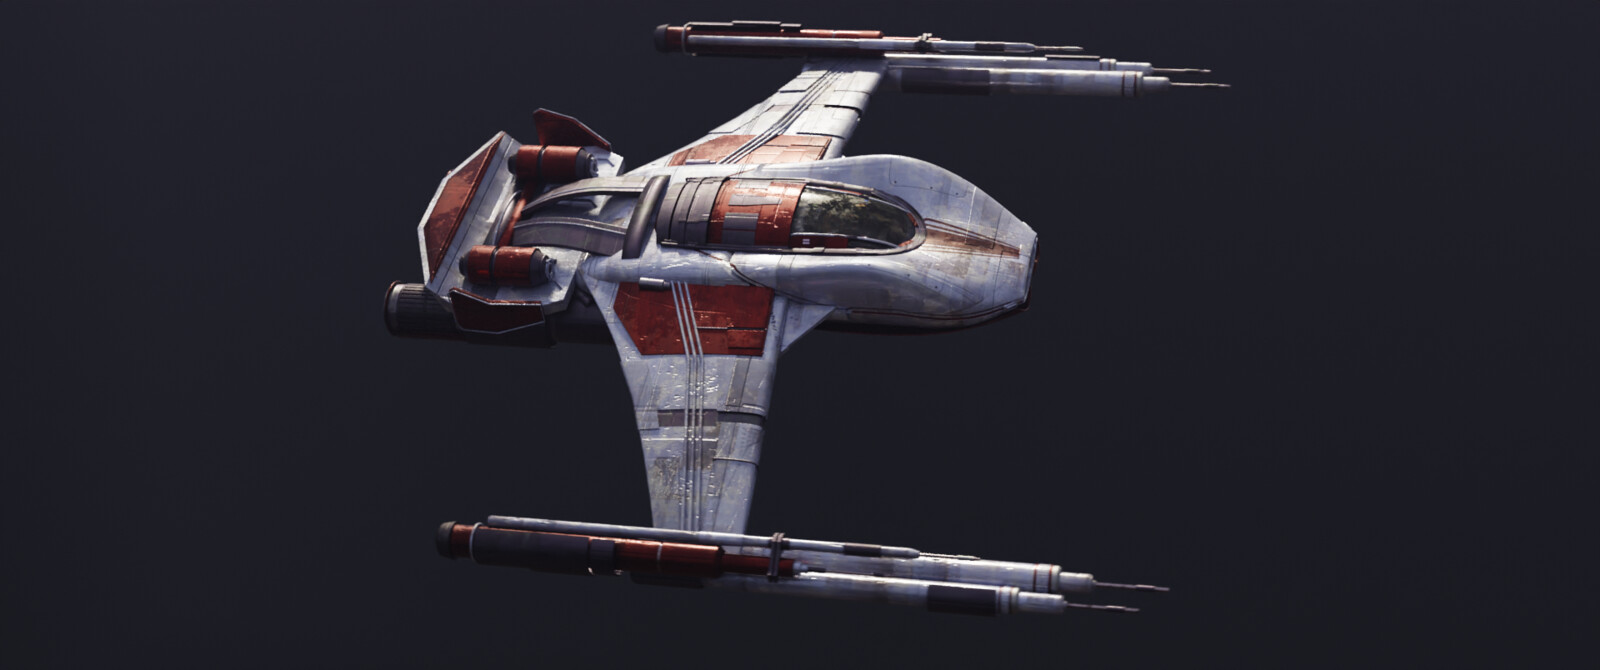 Interceptor design